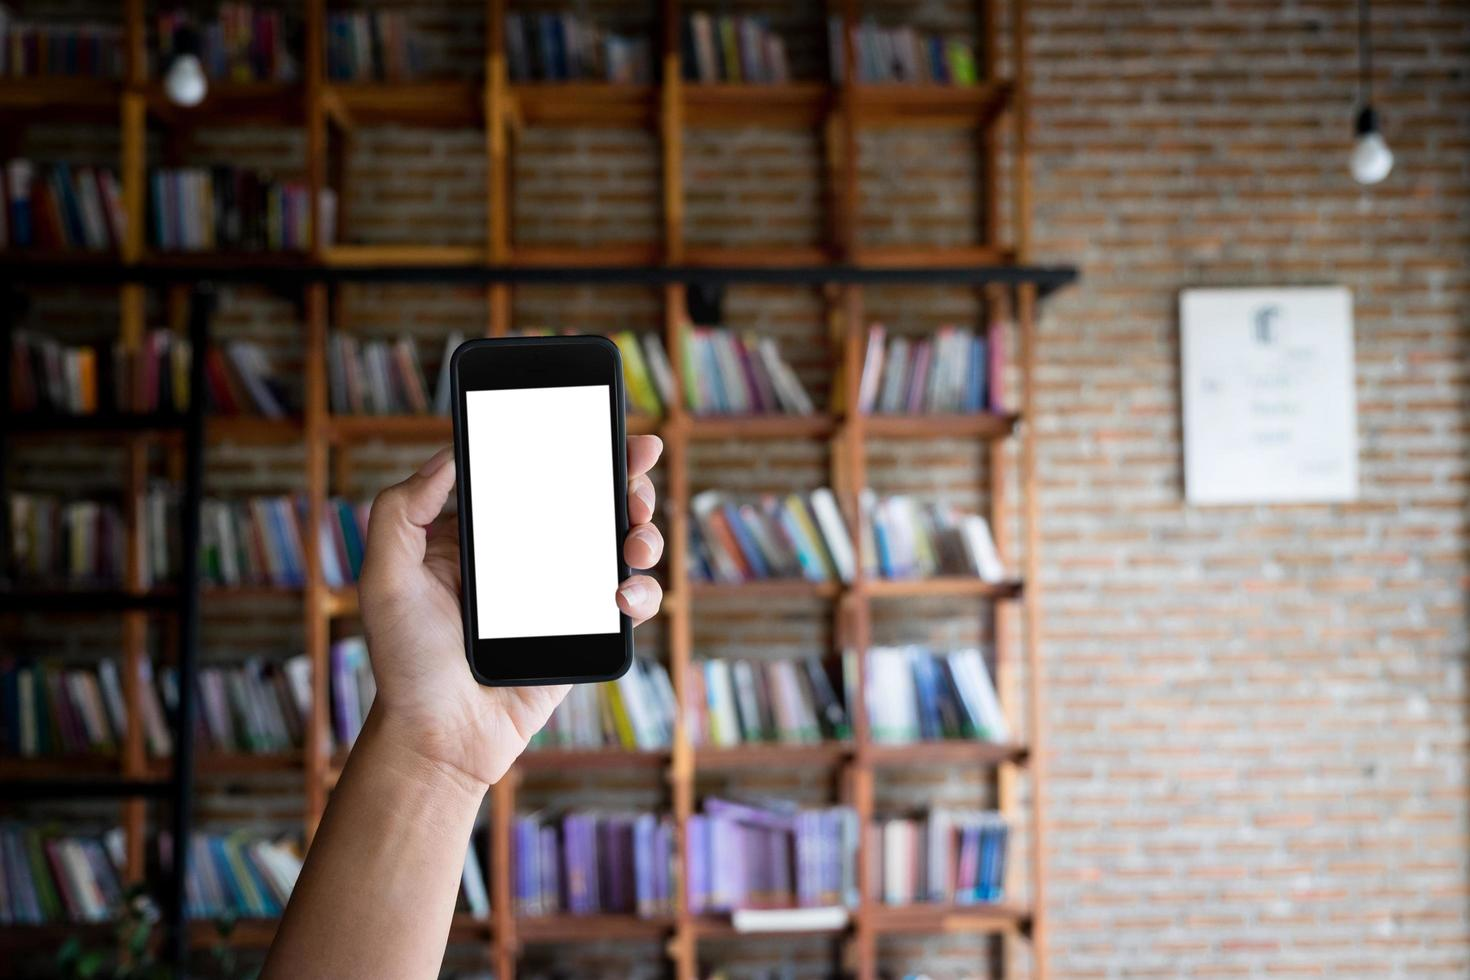 Smartphone mockup in front of a bookshelf photo